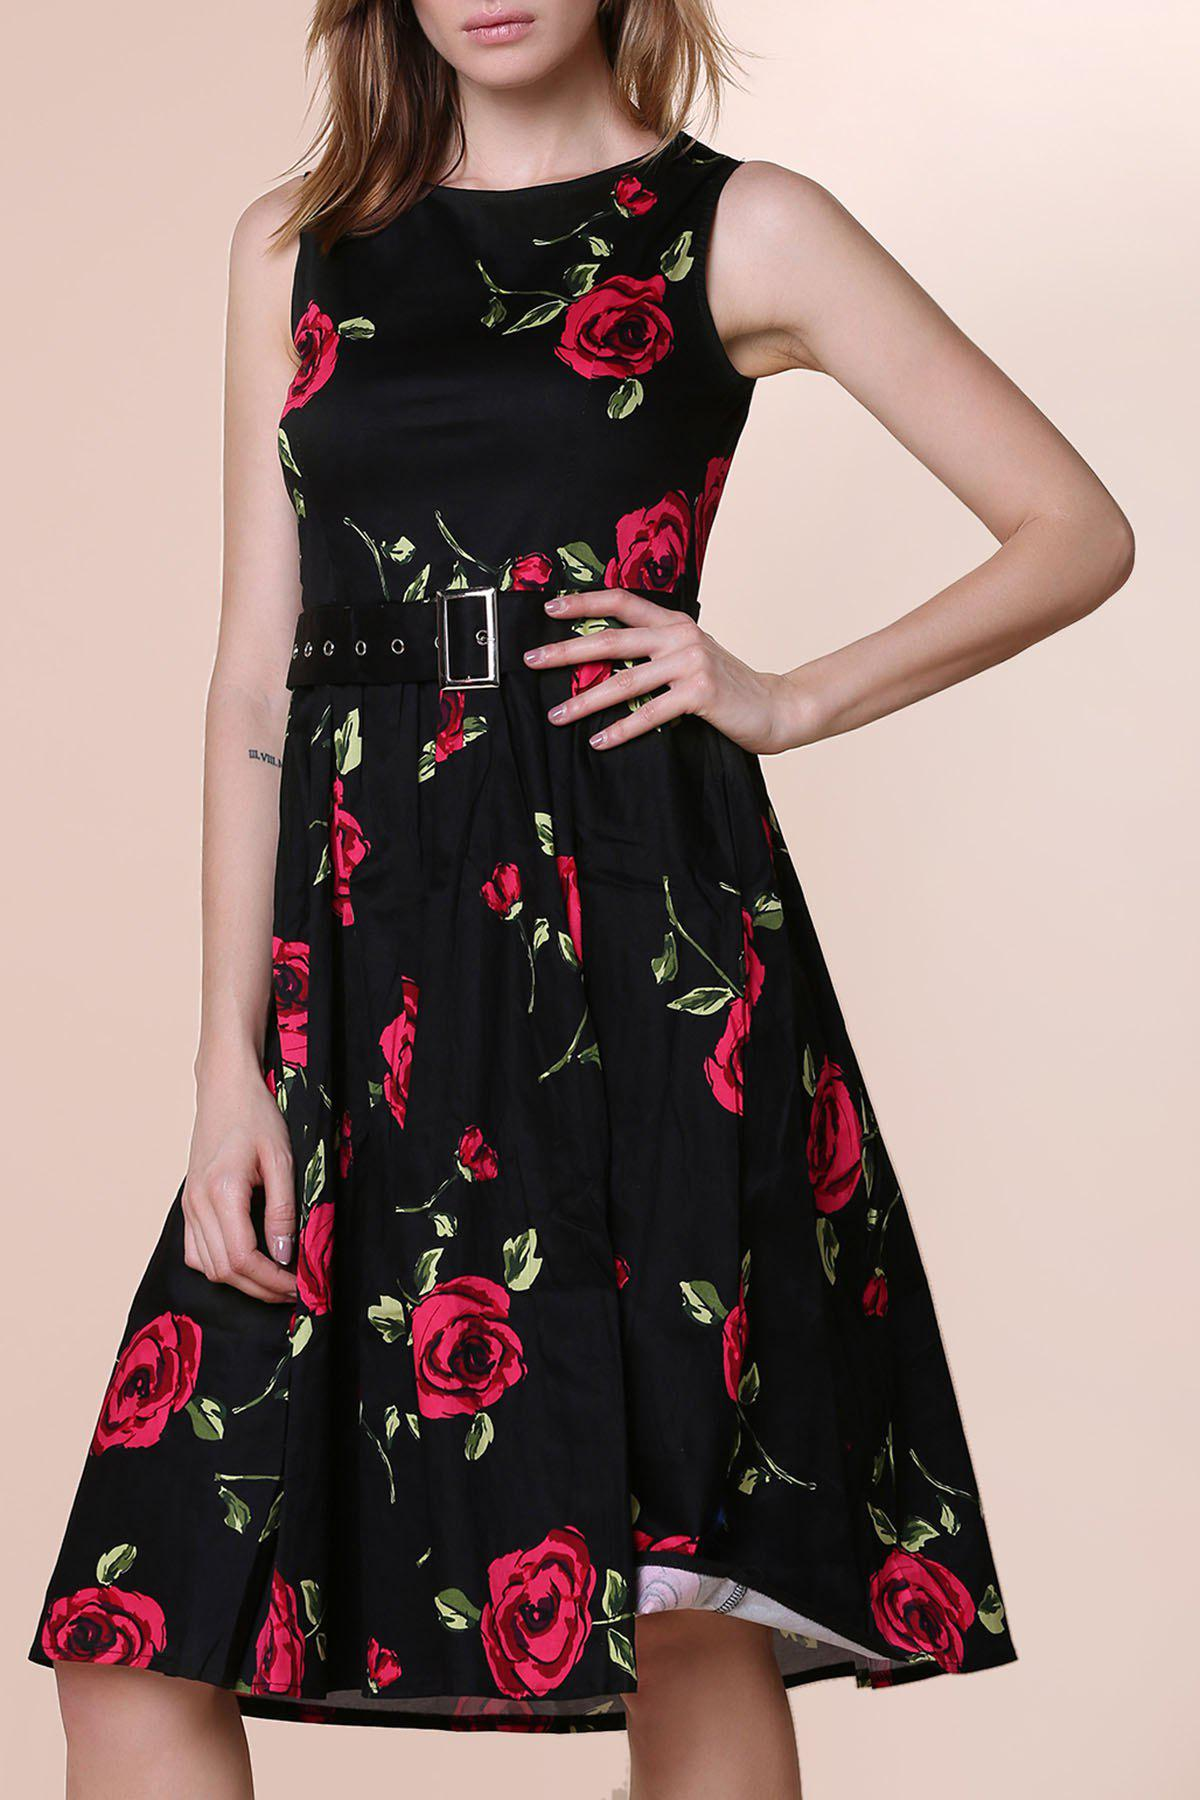 Retro Style Sleeveless Round Neck Roses Print Women's Ball Gown Dress - RED M